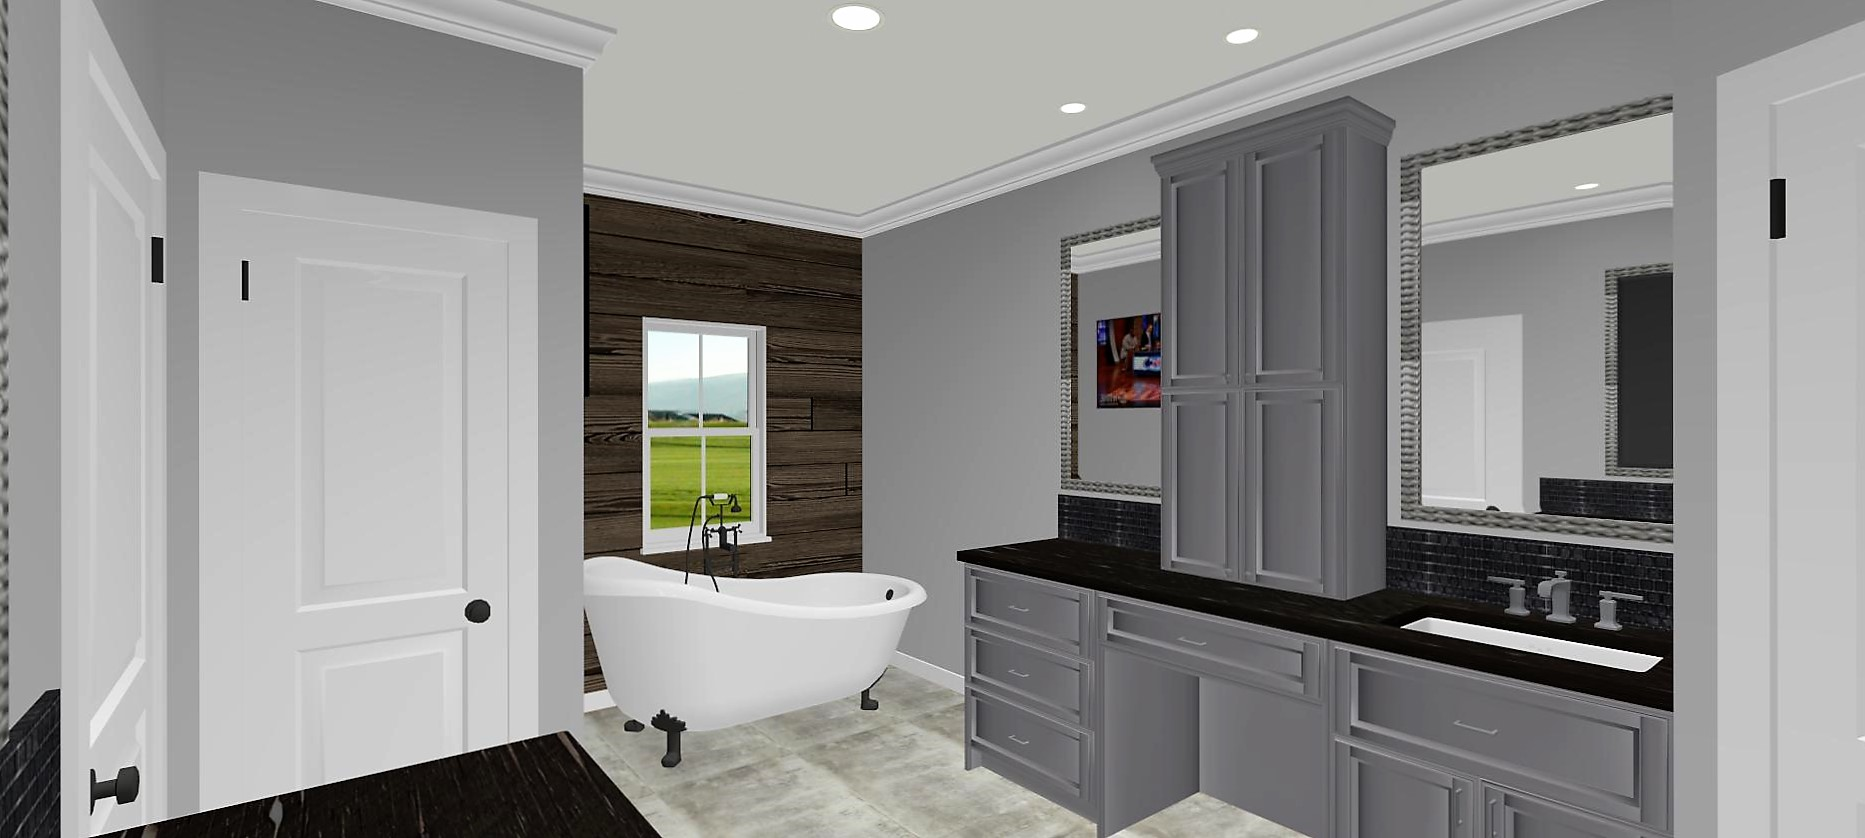 Master Bathroom 5.jpg